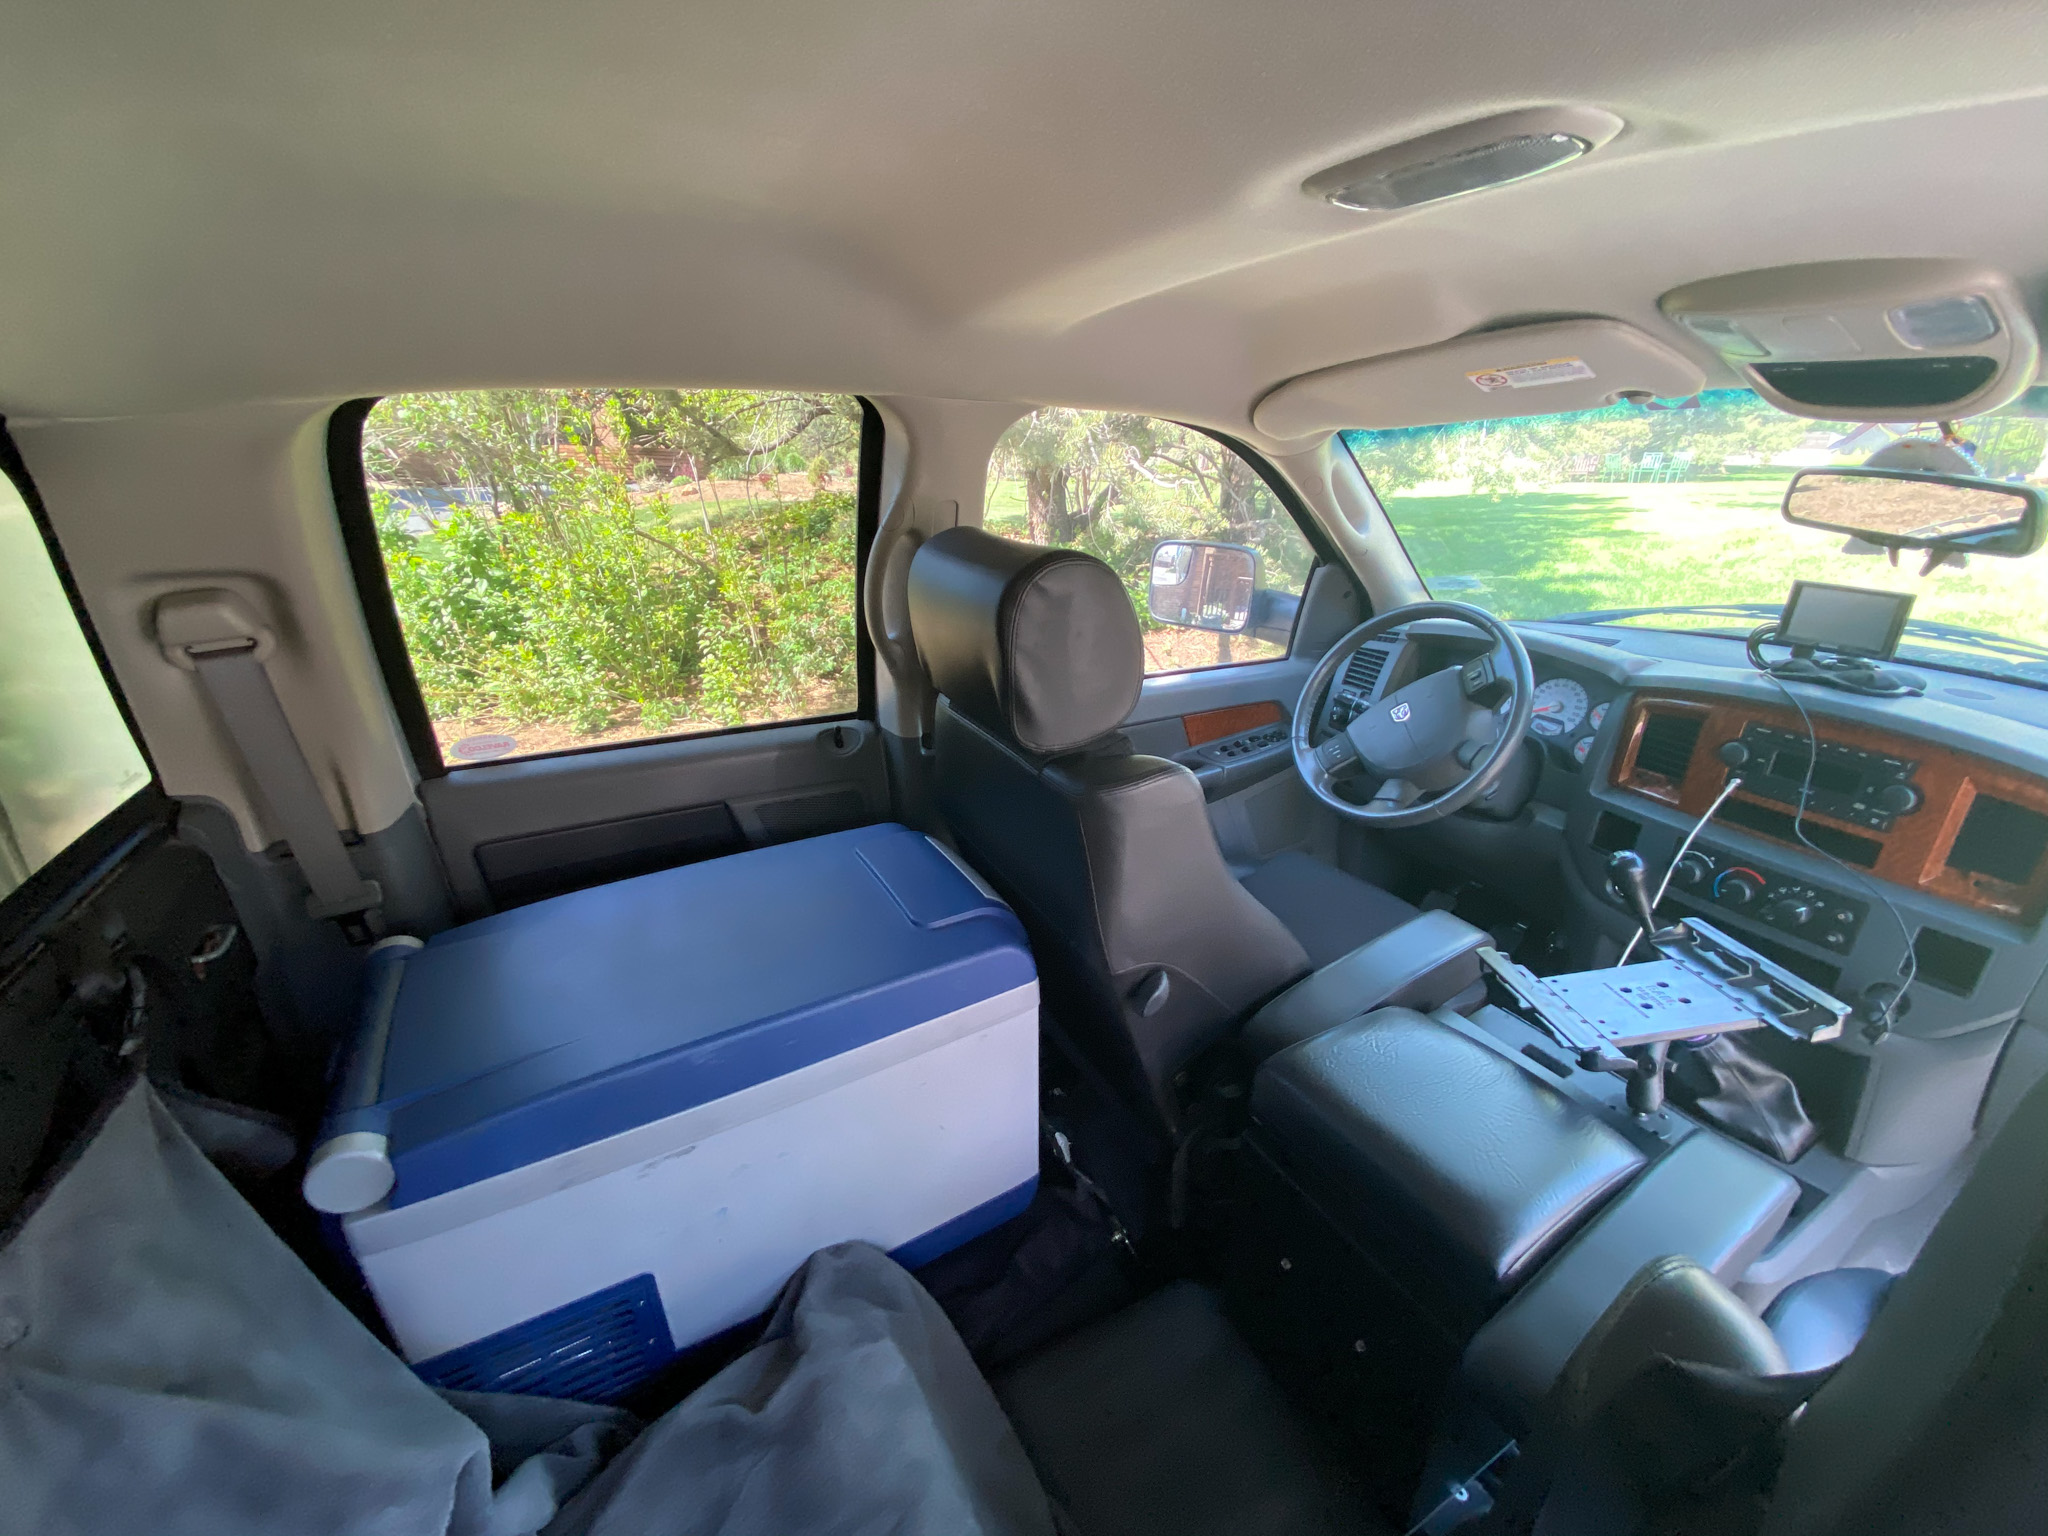 Picture 5 (Cab of Truck0.jpg